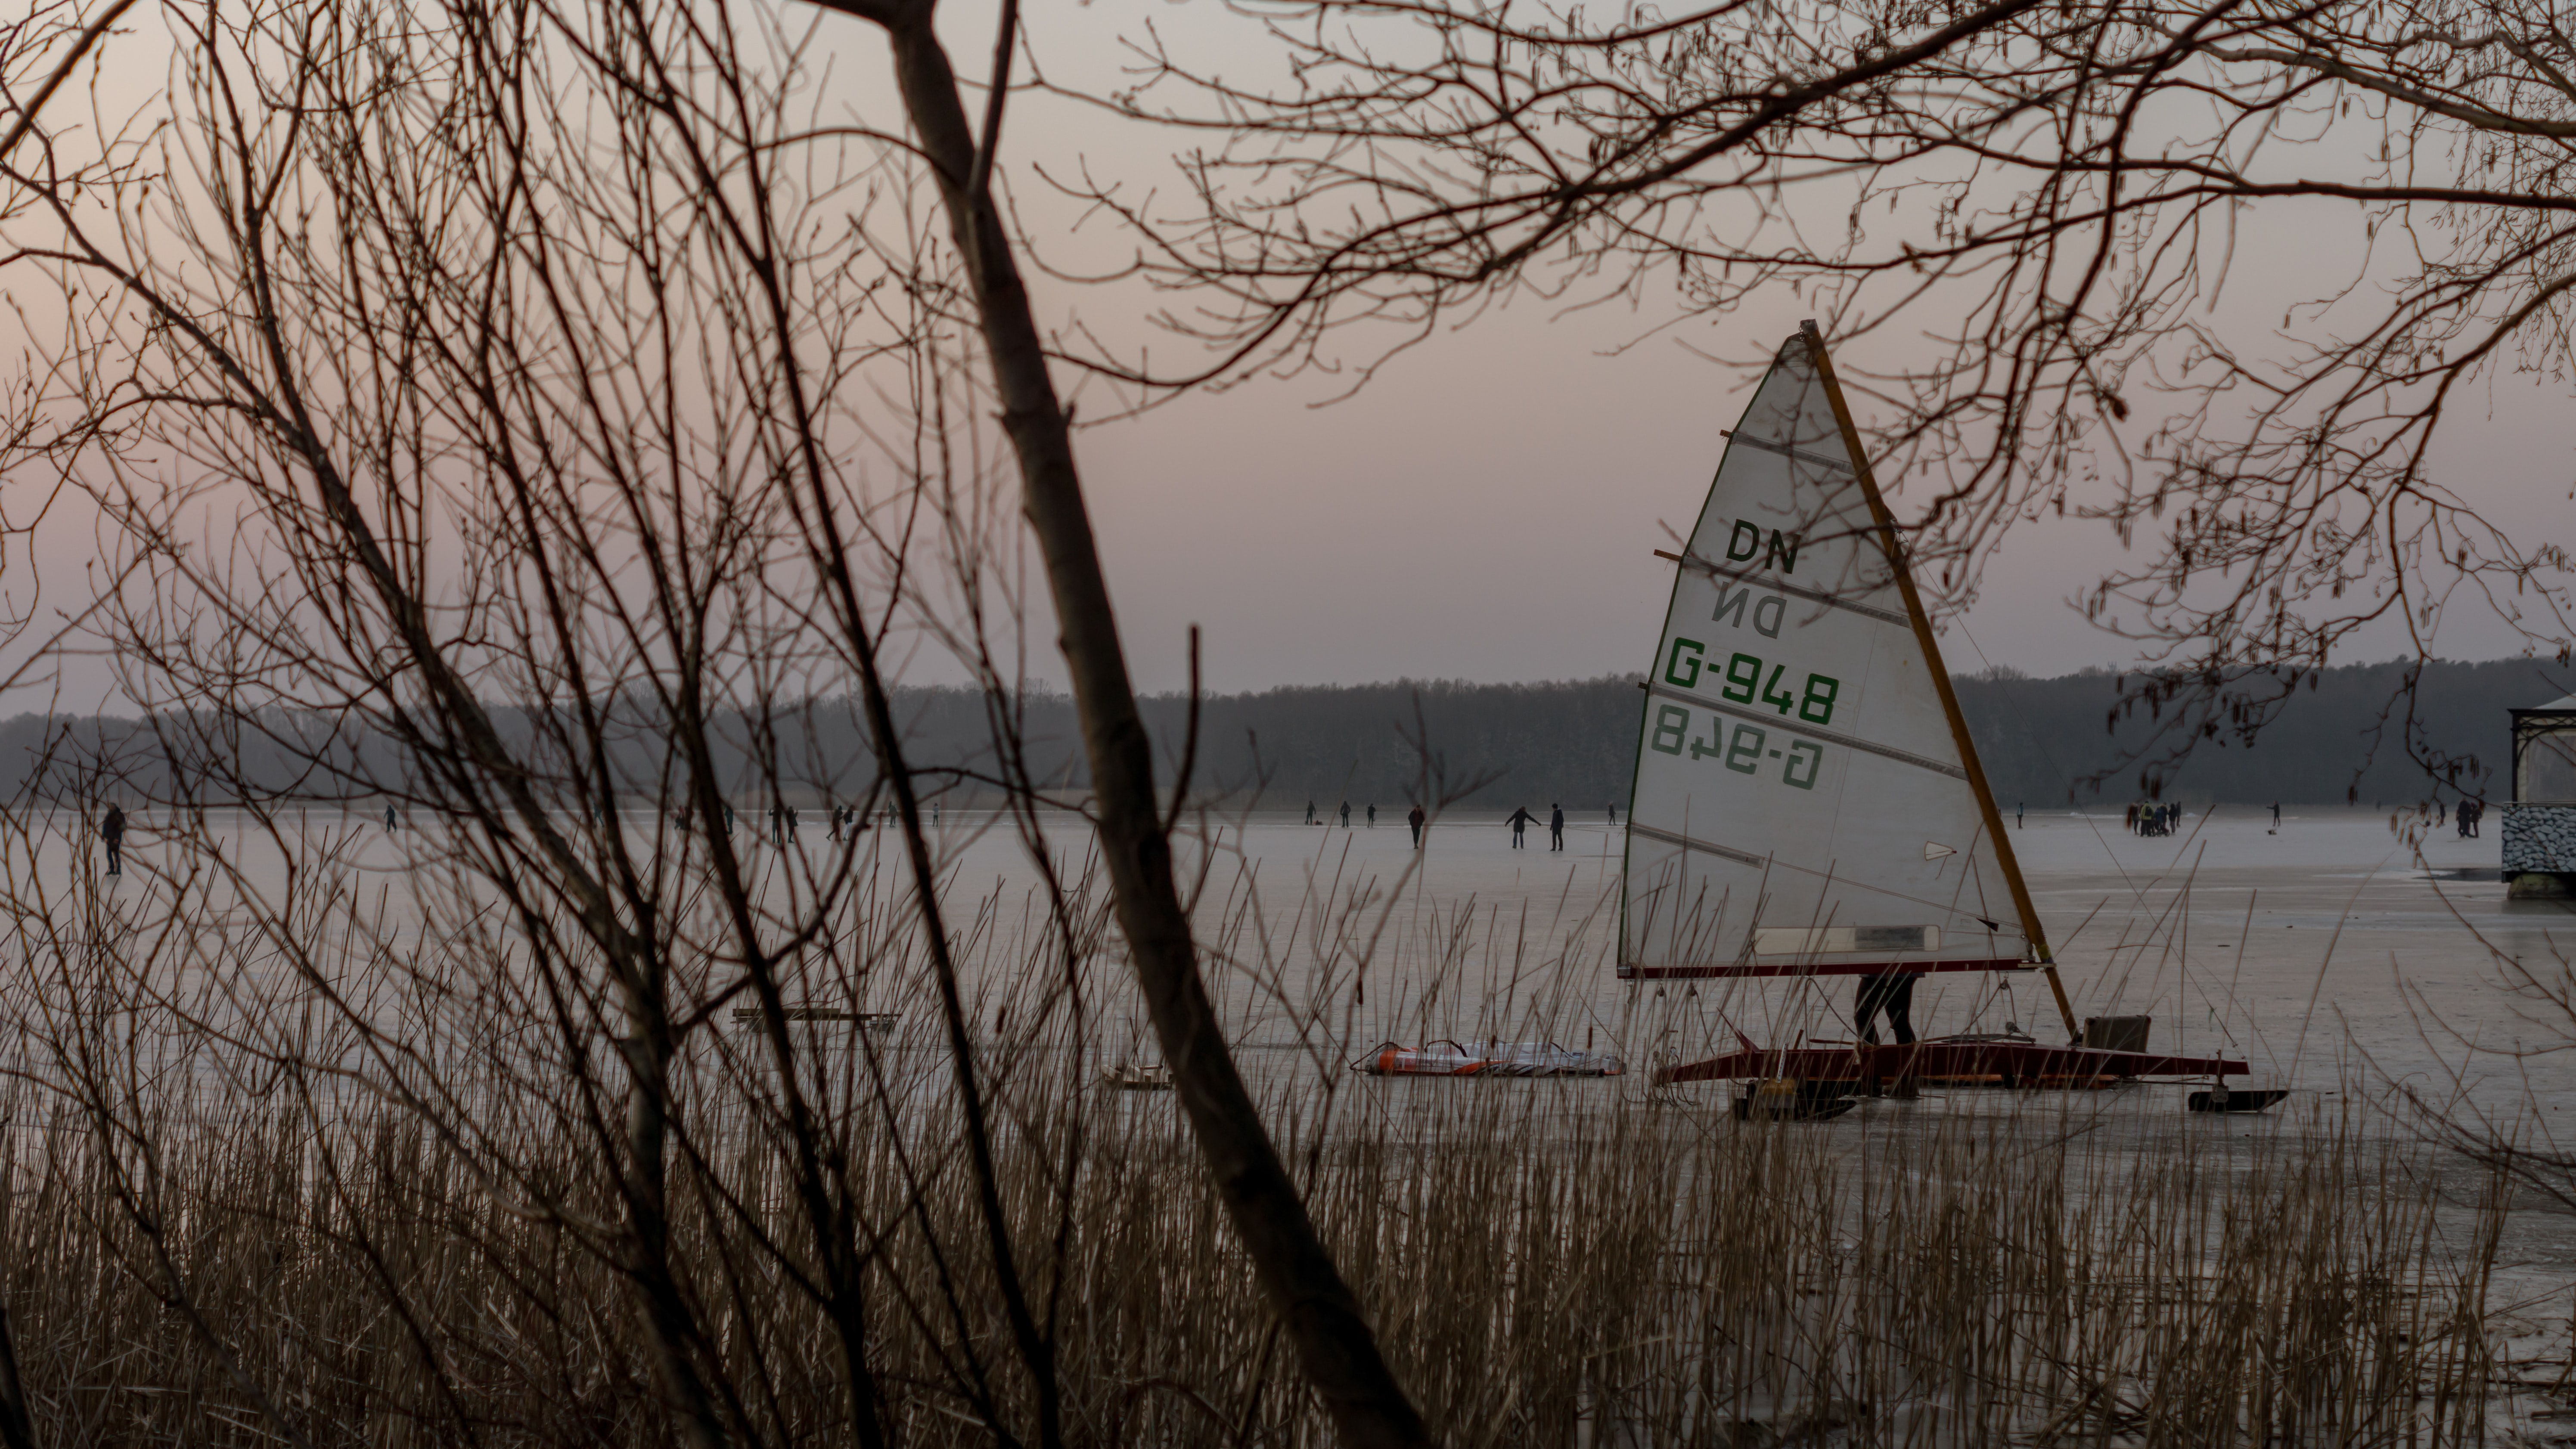 person sailboating on body of water